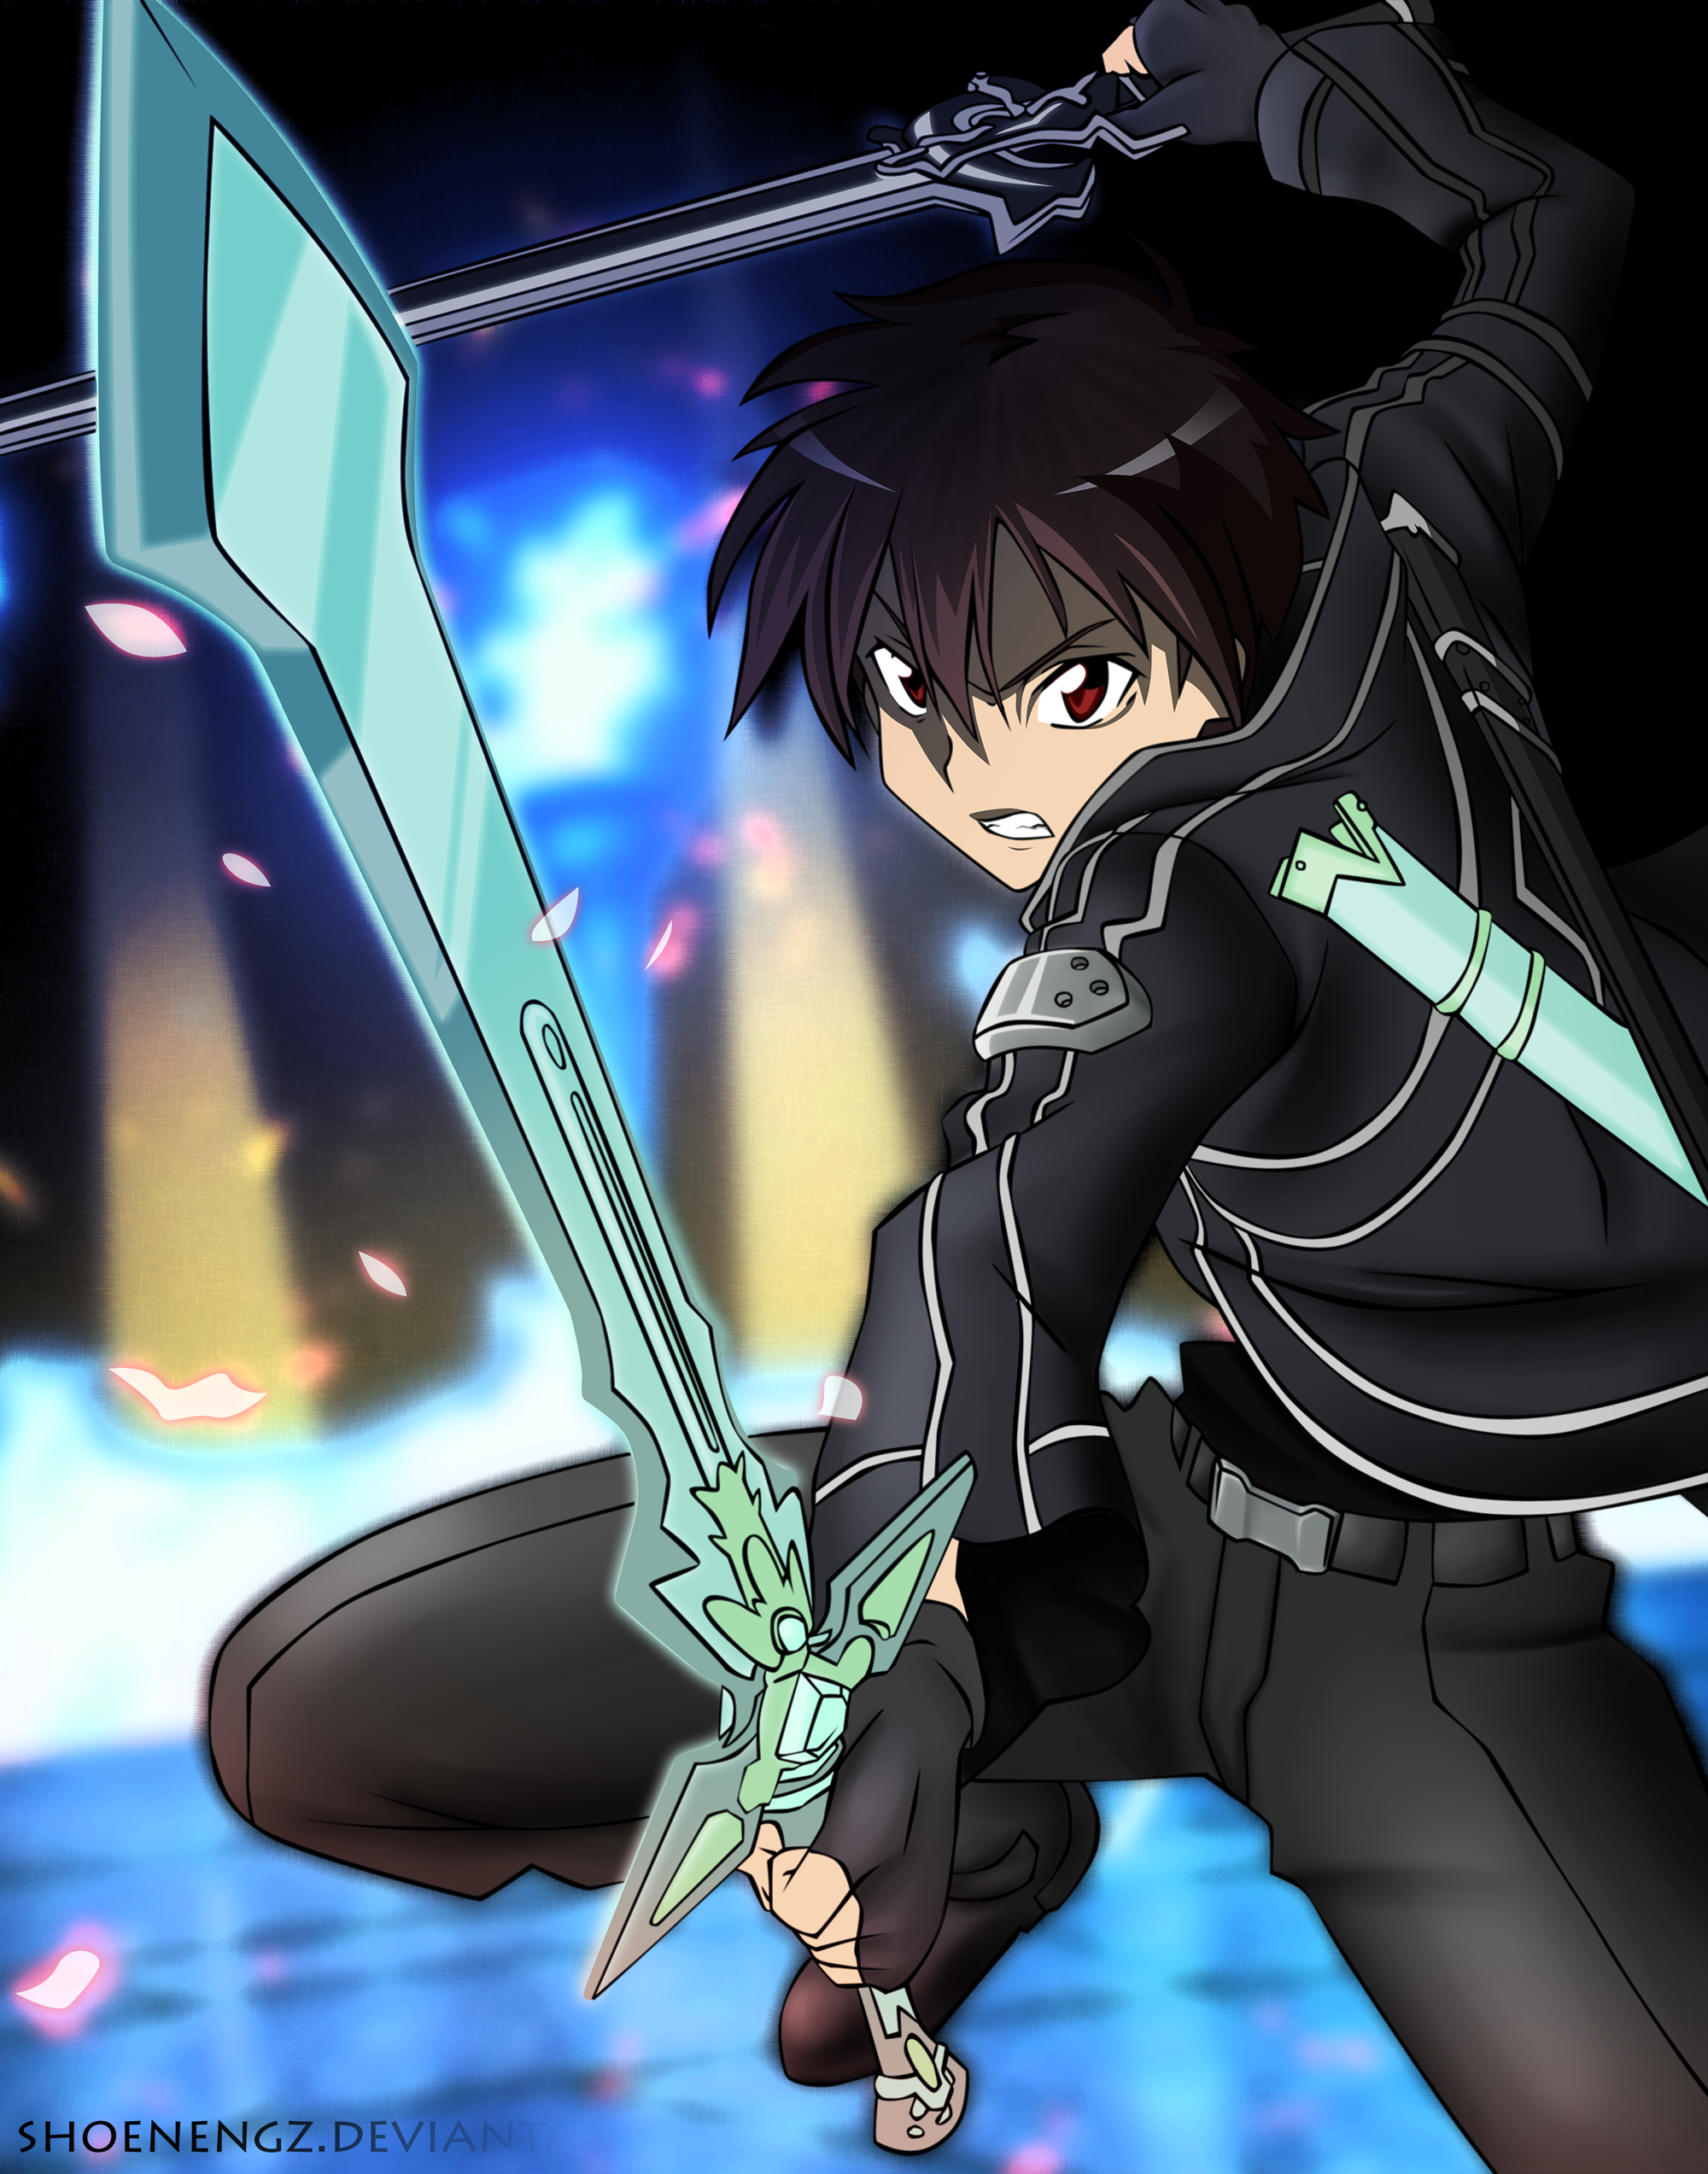 Image gallery kirito sao for Online art galleries reviews